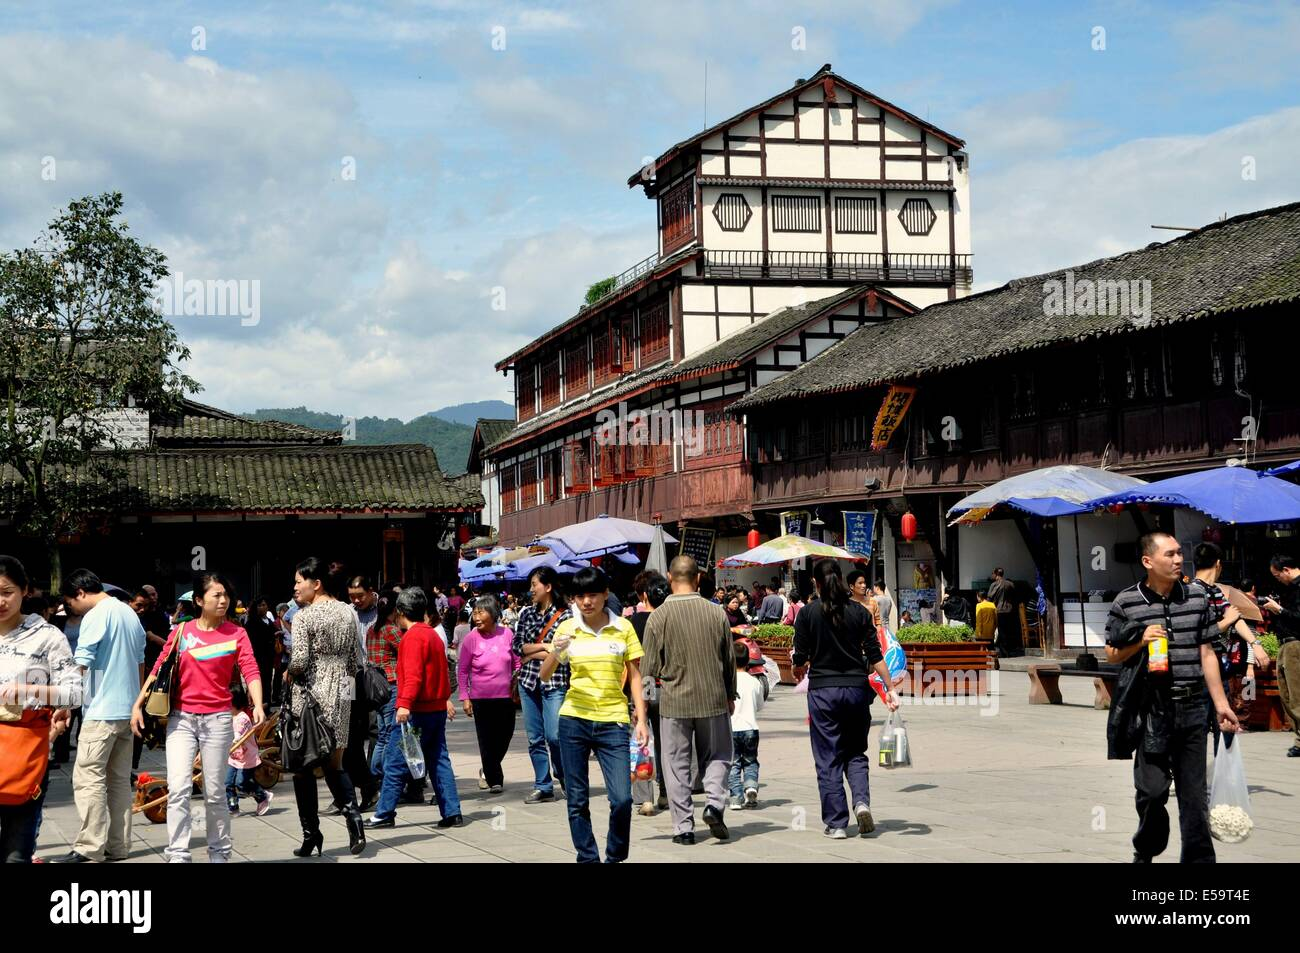 JIEZI ANCIENT TOWN, CHINA: A unique wooden and stuccoed house towers over the Wastepaper Library Square thronged - Stock Image